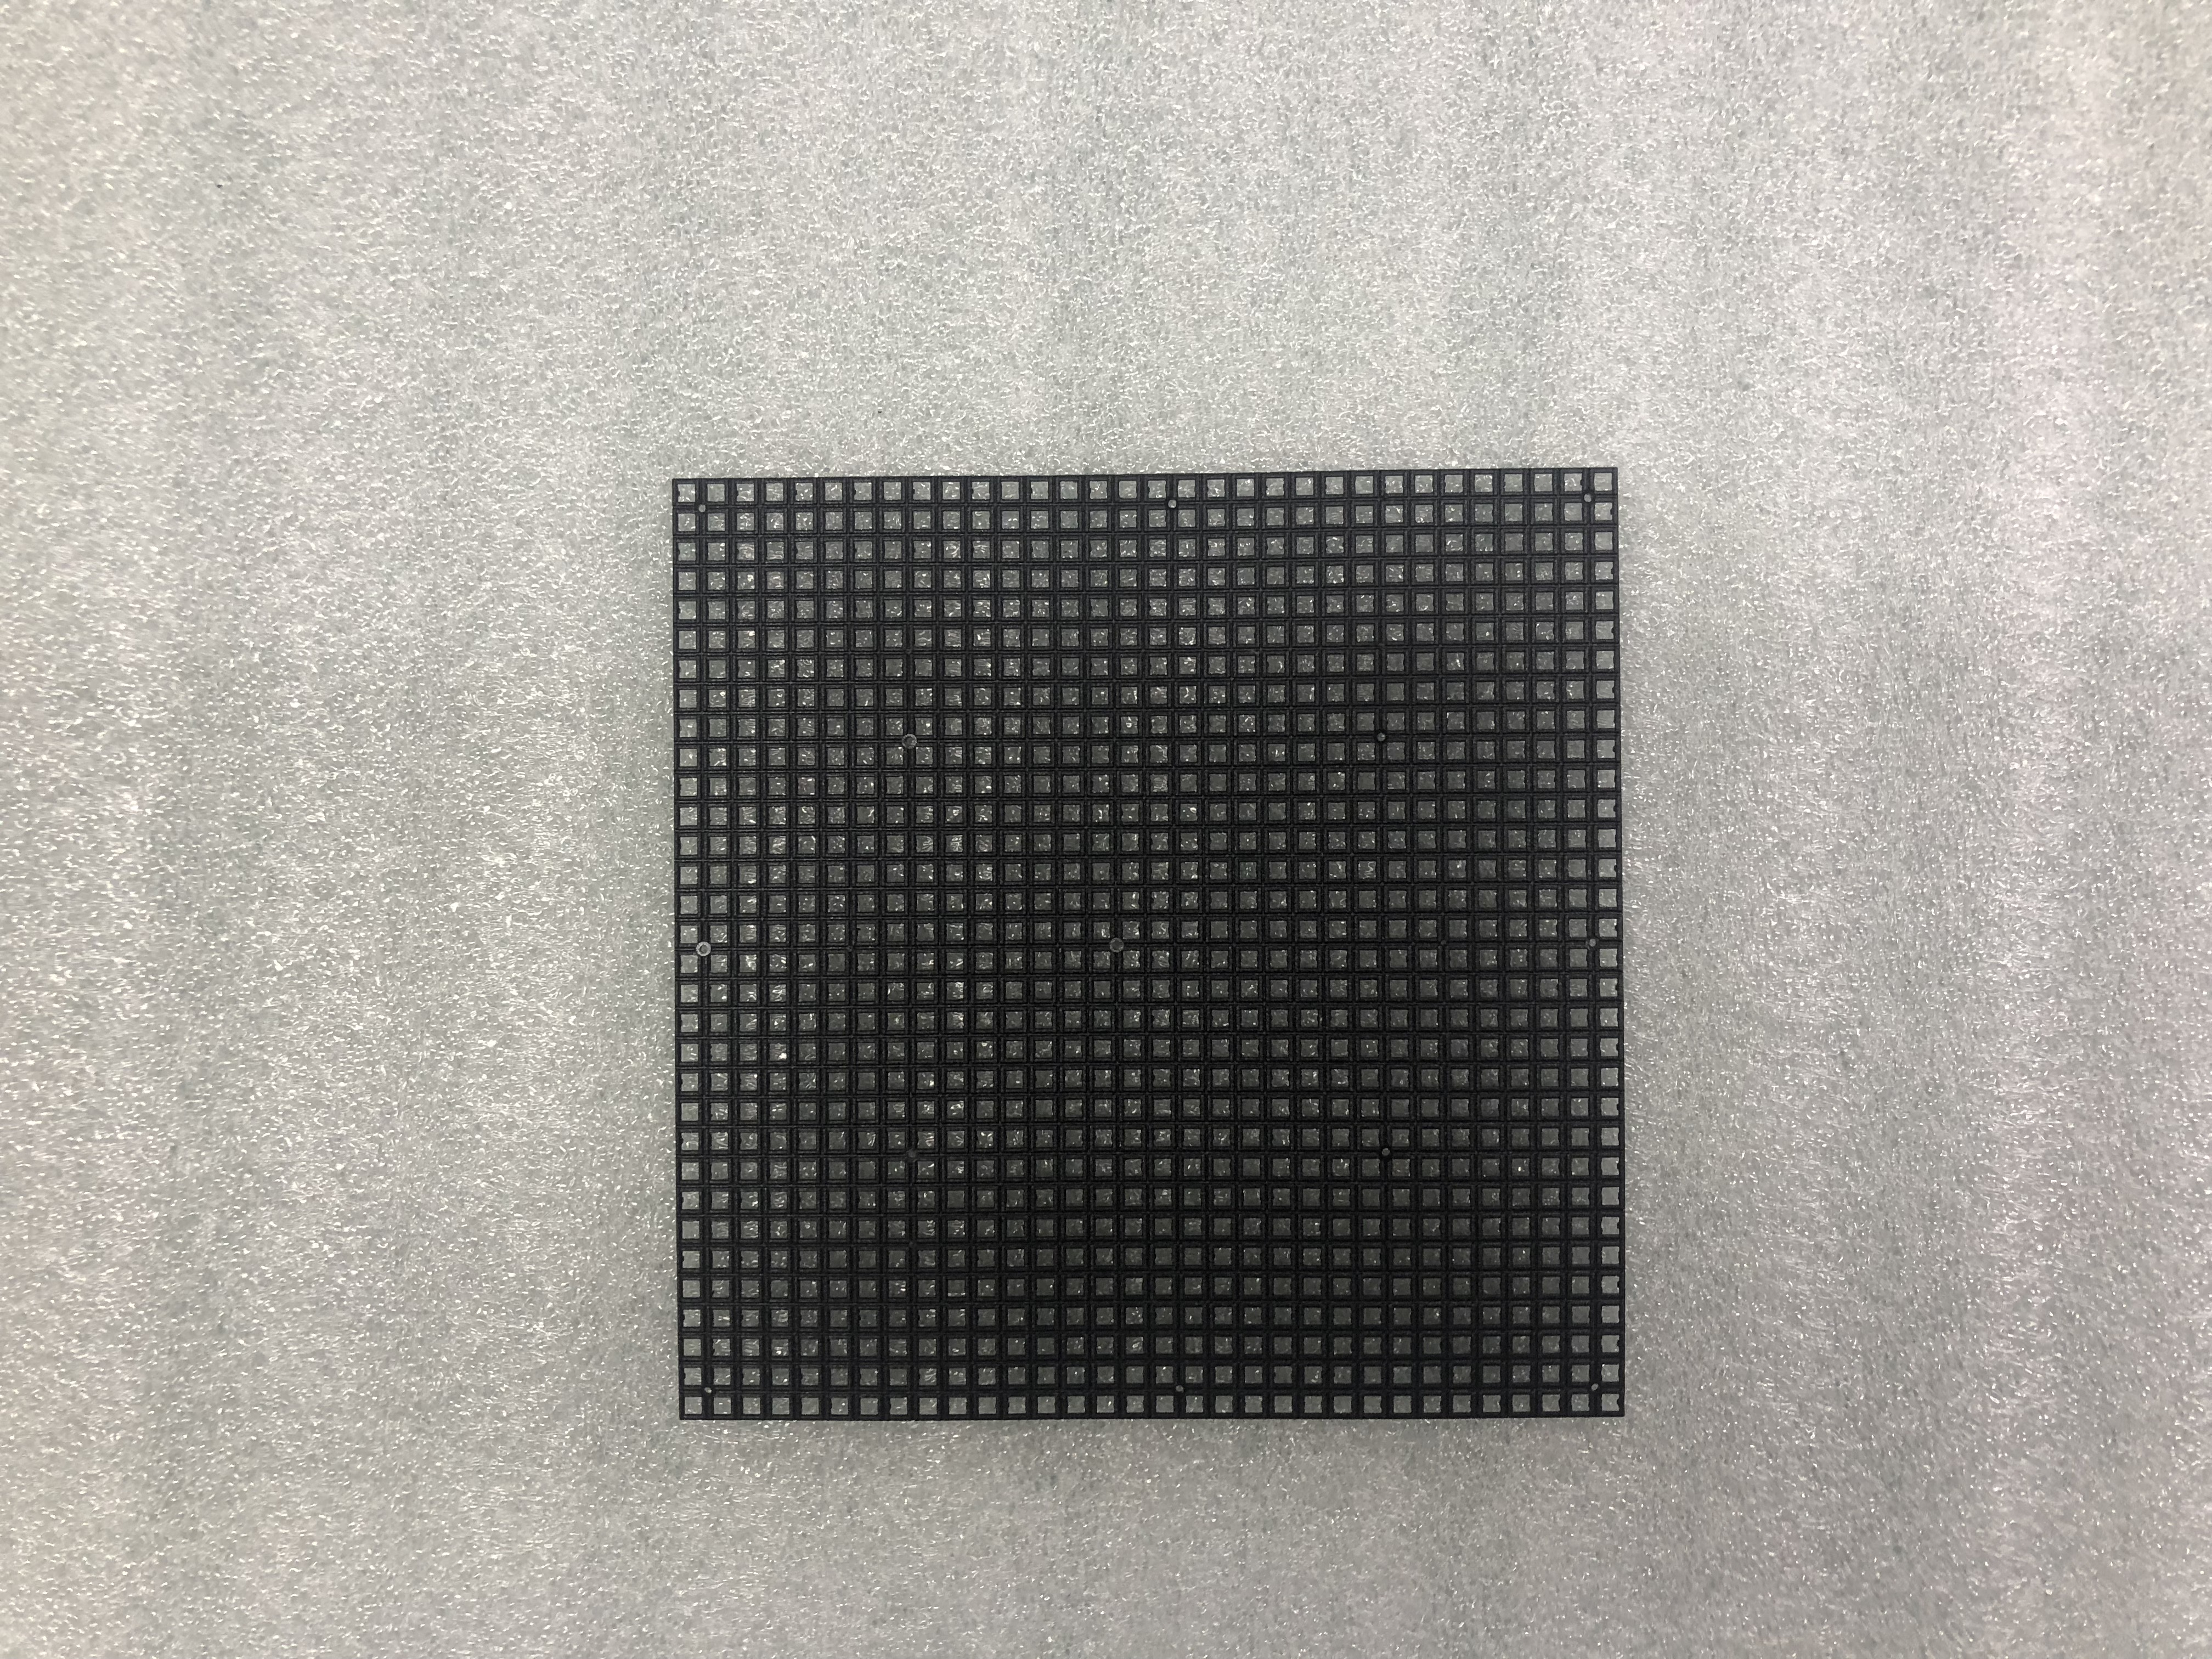 Indoor P3.91 Module Mask 125x125mm mask-in LED Displays from Electronic Components & Supplies